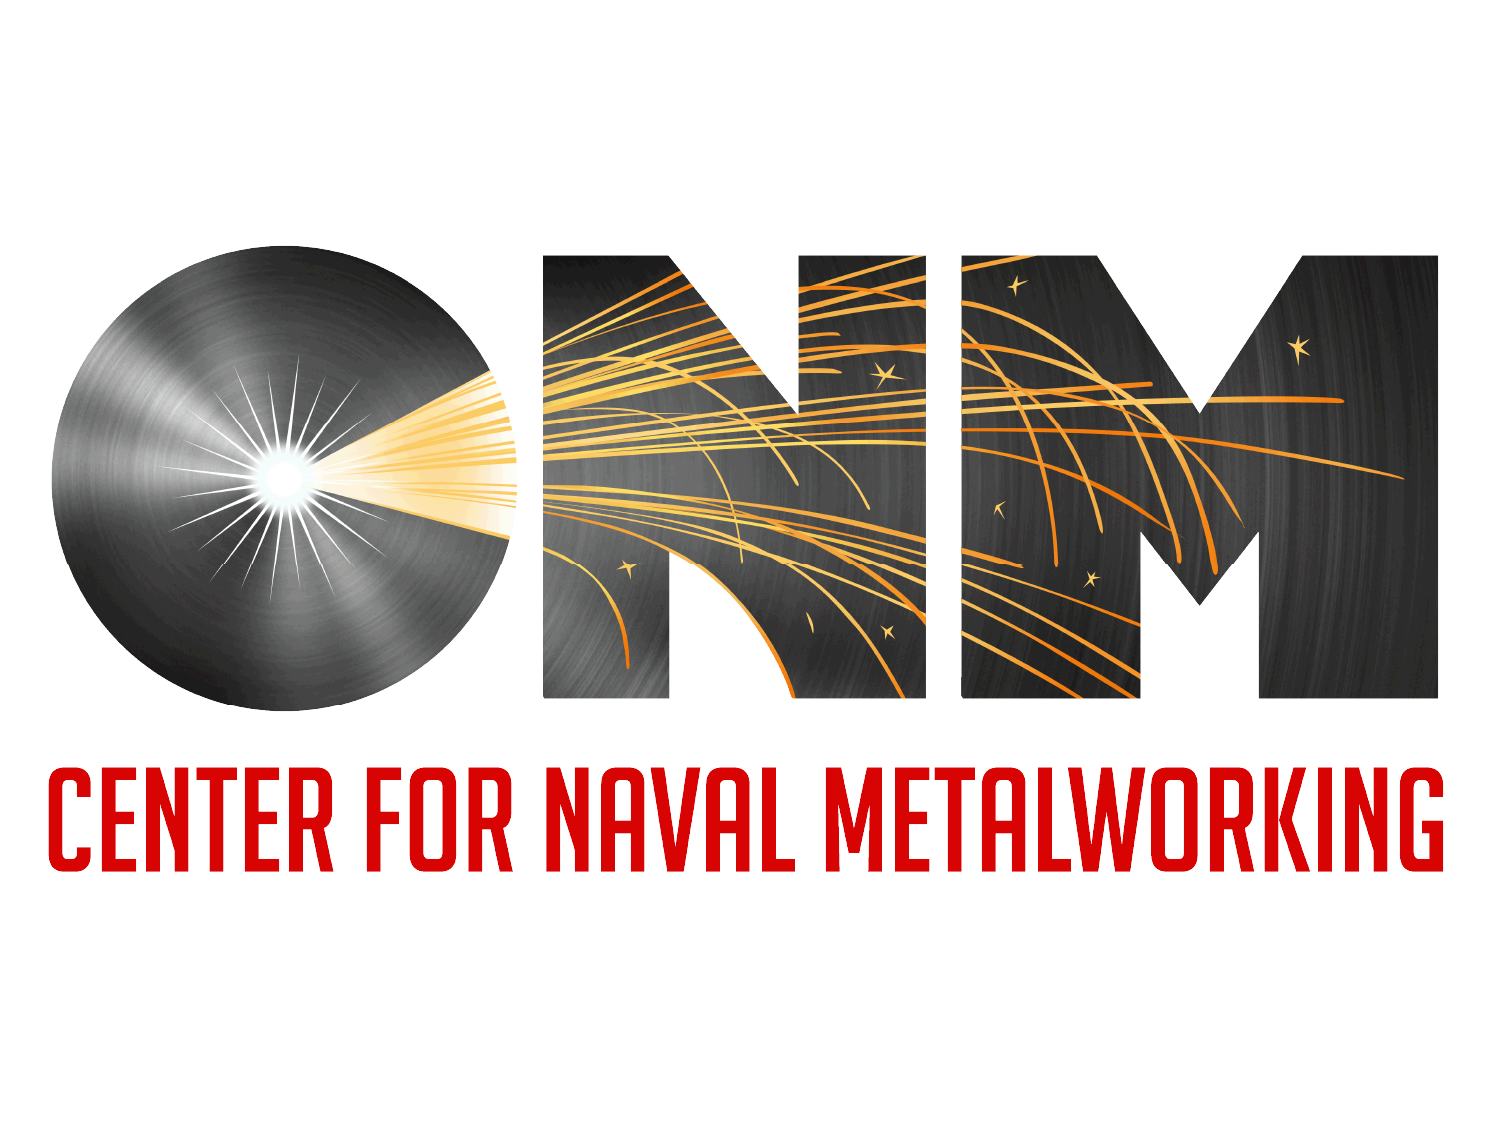 Center for Naval Metalworking logo